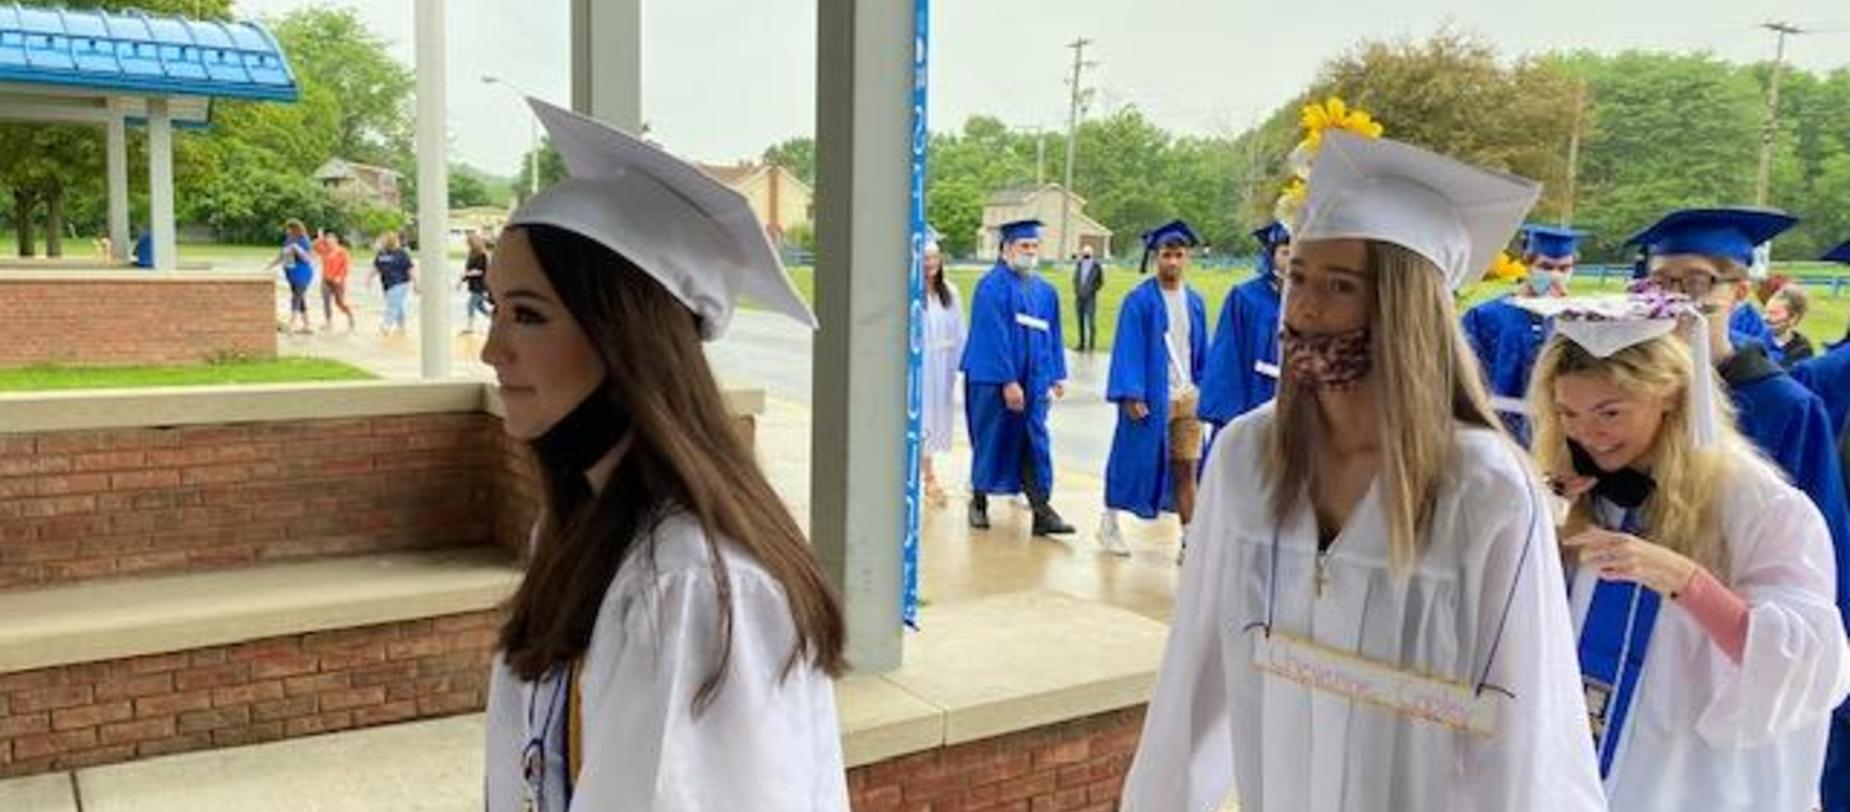 students wearing cap and gown.